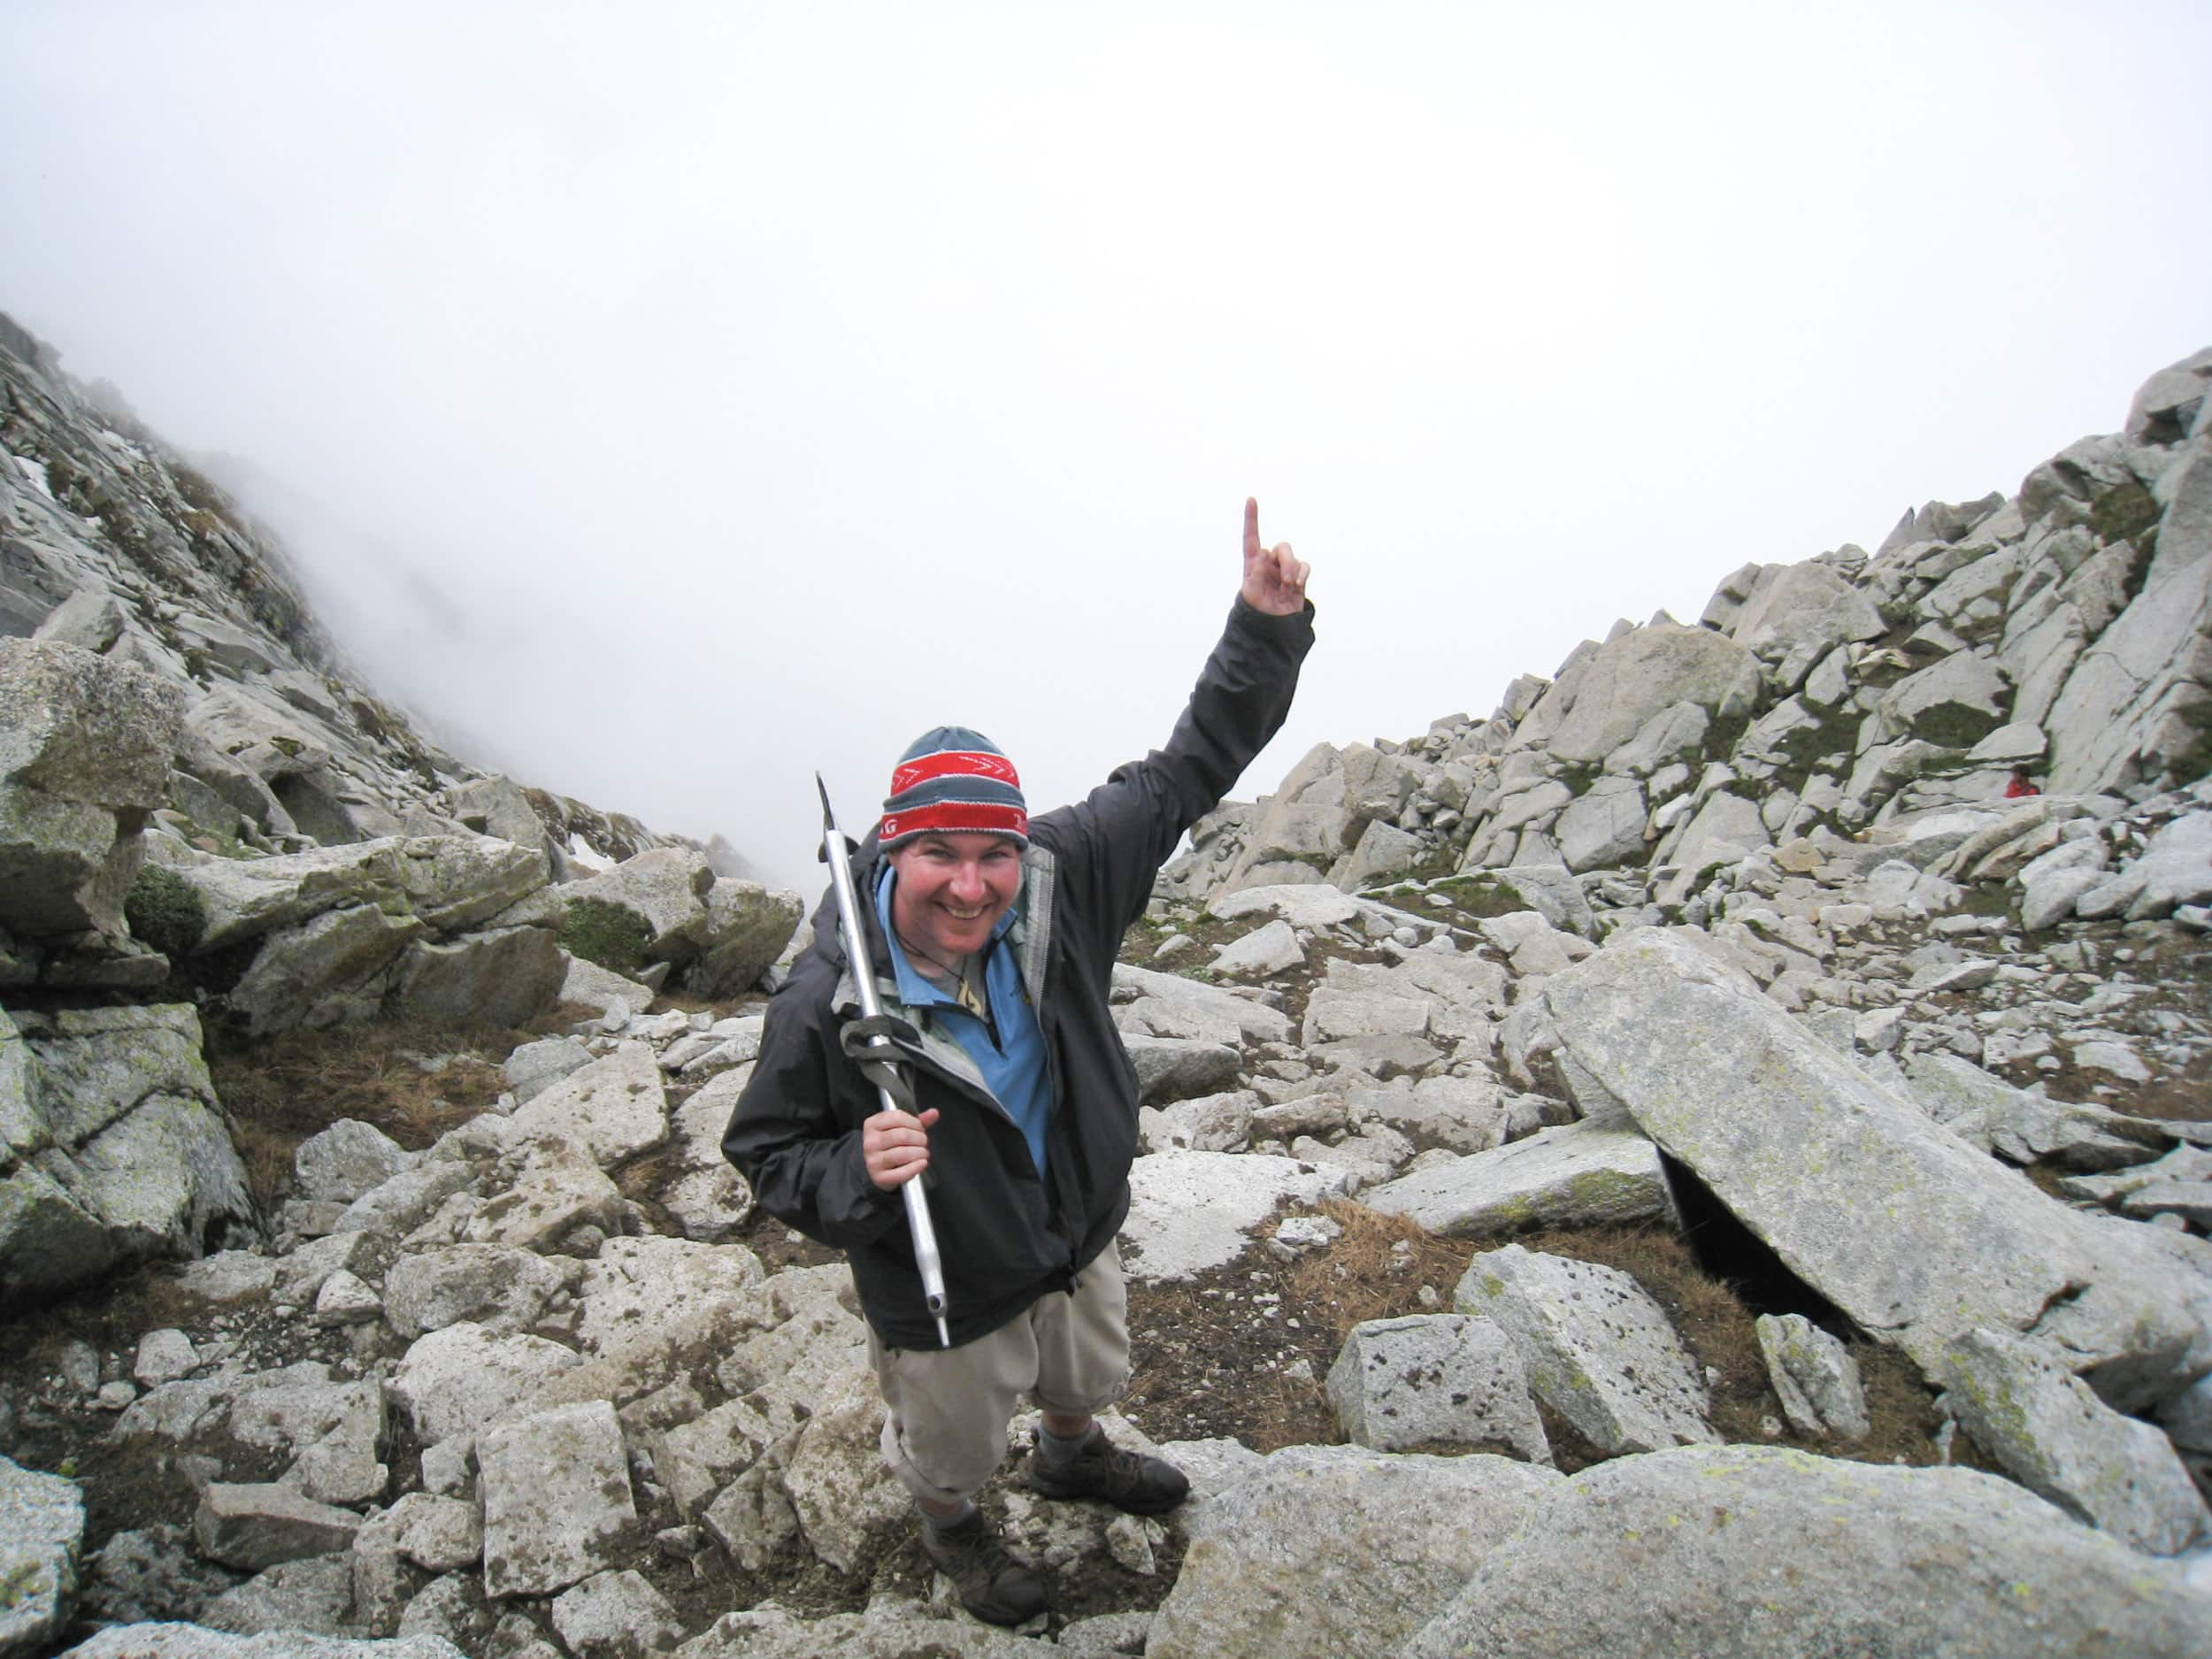 Me at 4,300 meters, a few steps below Indrahar Pass